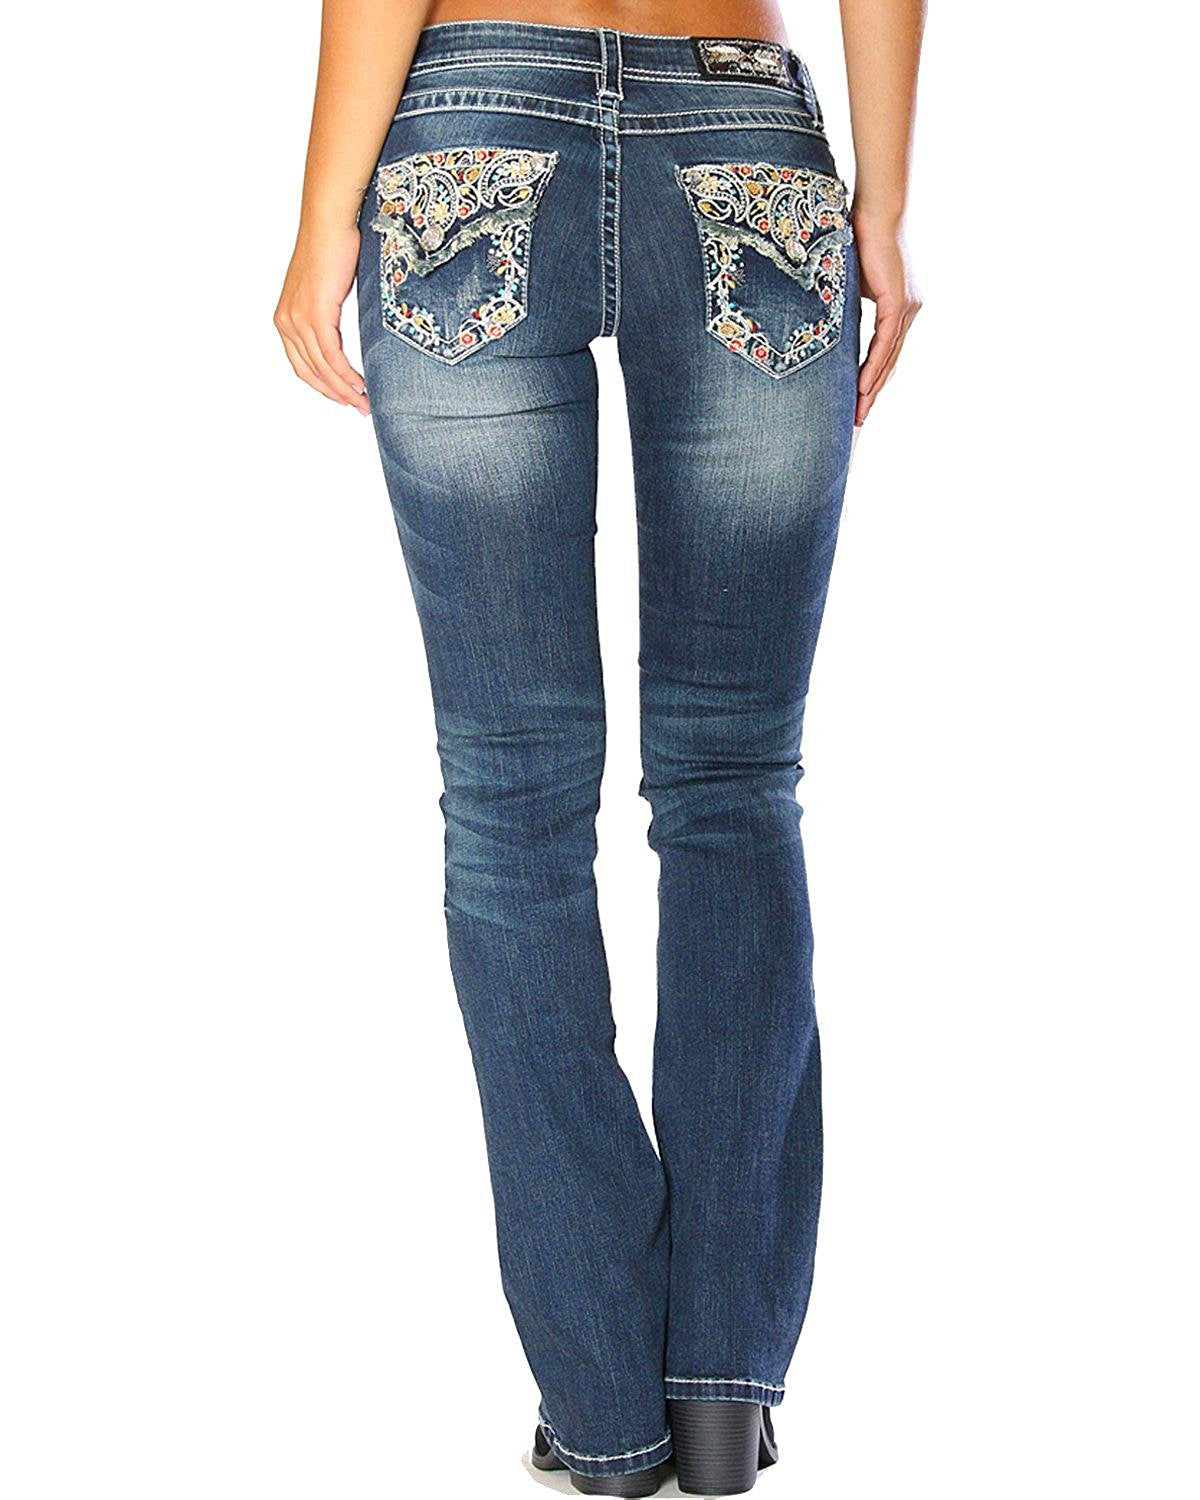 Grace in LA Women's Blue Floral Embroidered Flap Jeans Boot Cut - EB3202